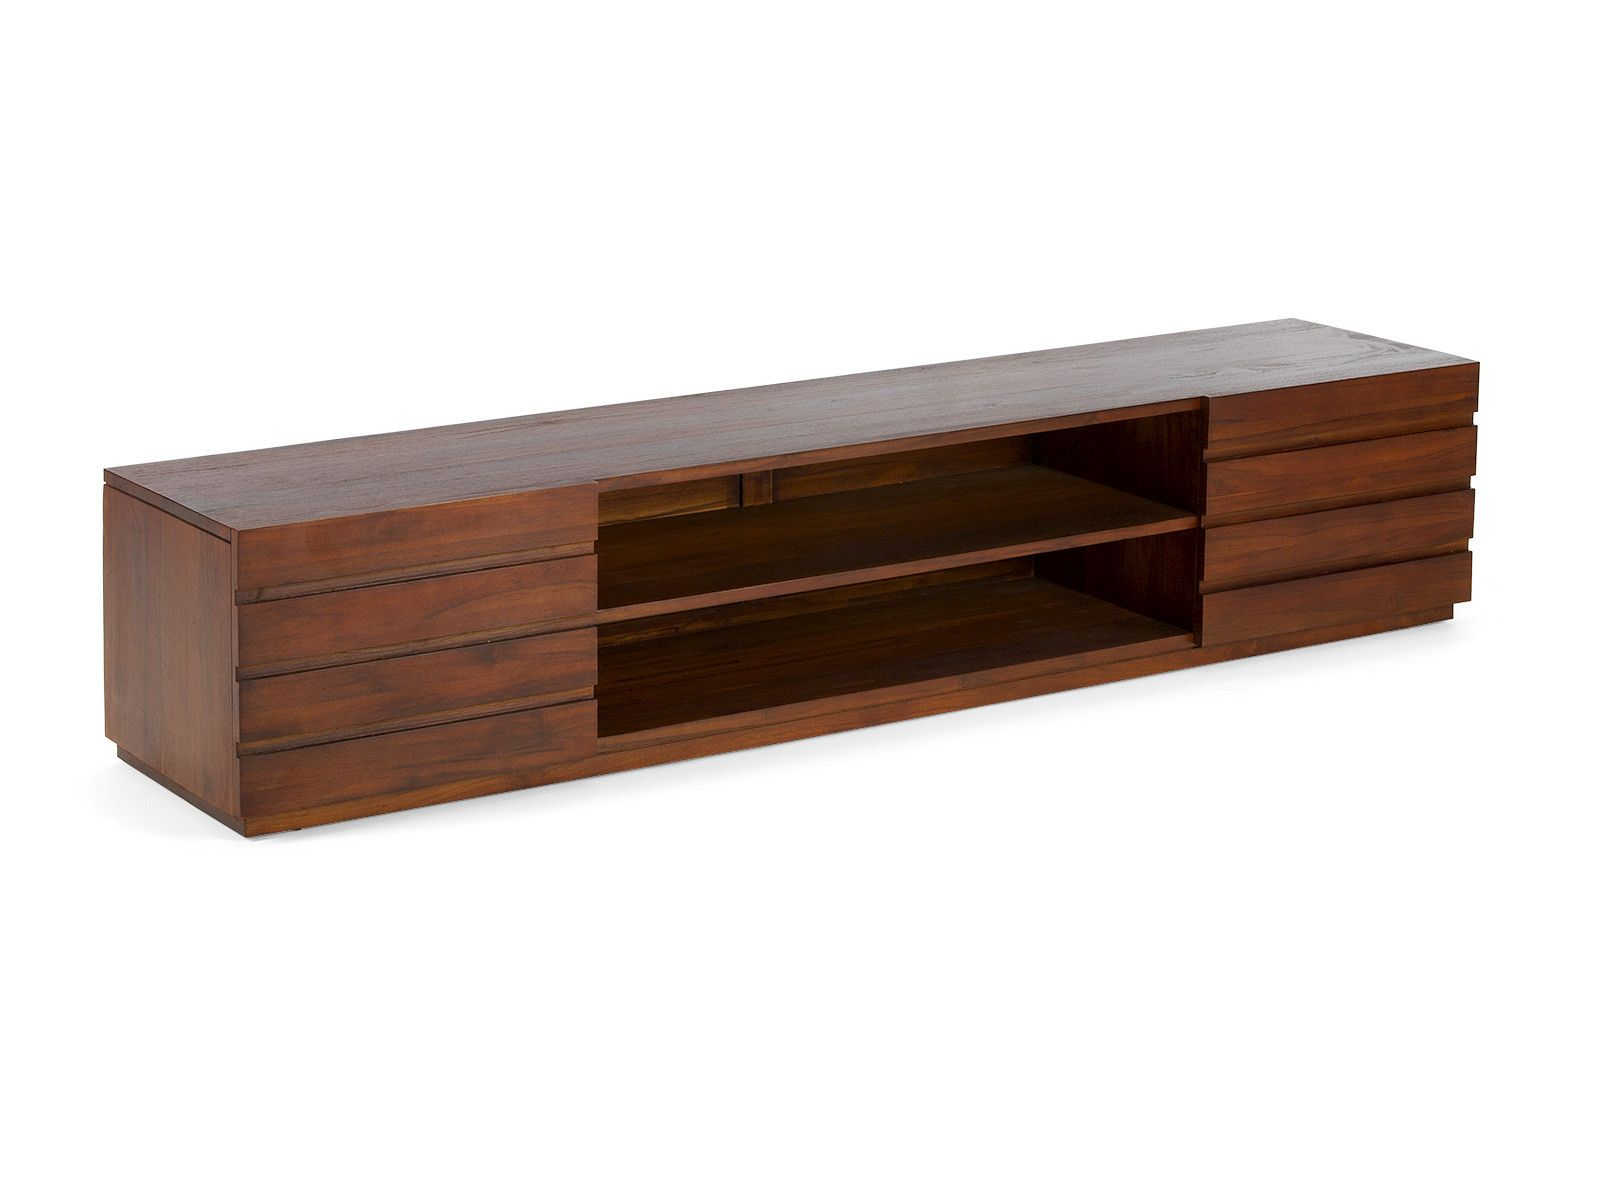 Massivholz Tv Bank Billig Tv Bank Massivholz | Tv Lowboard Holz, Teak, Holz